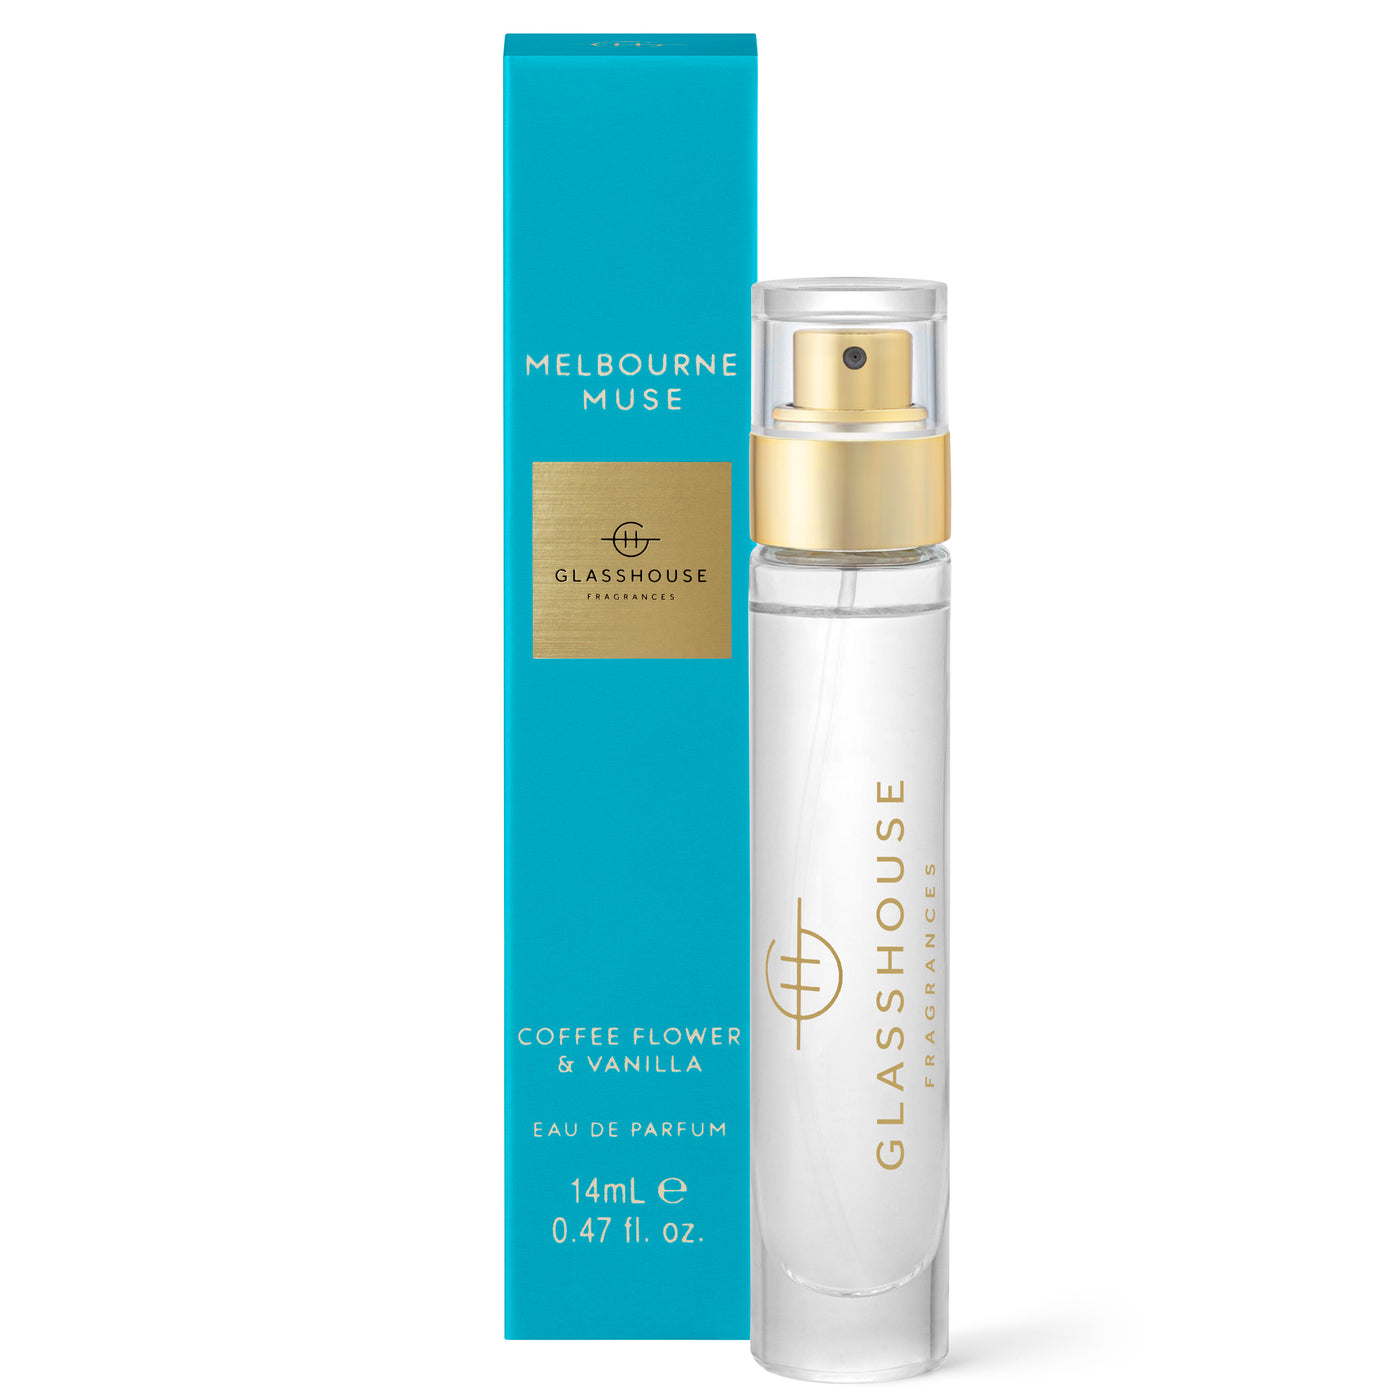 14ml MELBOURNE MUSE EDP